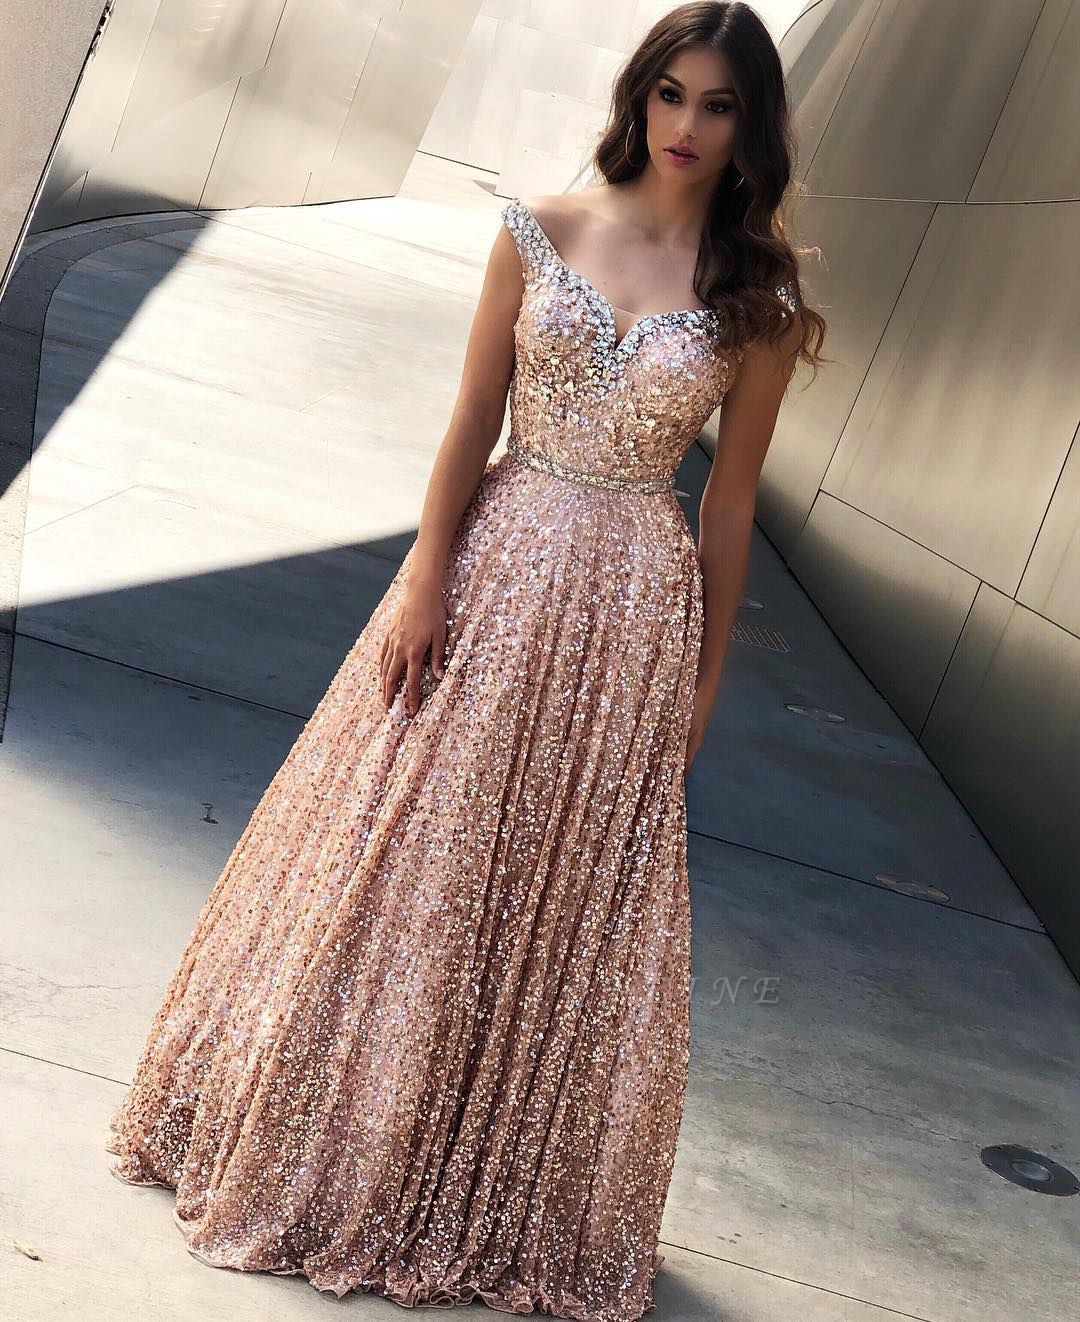 Rose Gold Sequins Evening Dresses |Cheap Off The Shoulder Sexy Bling-bling Prom Dress